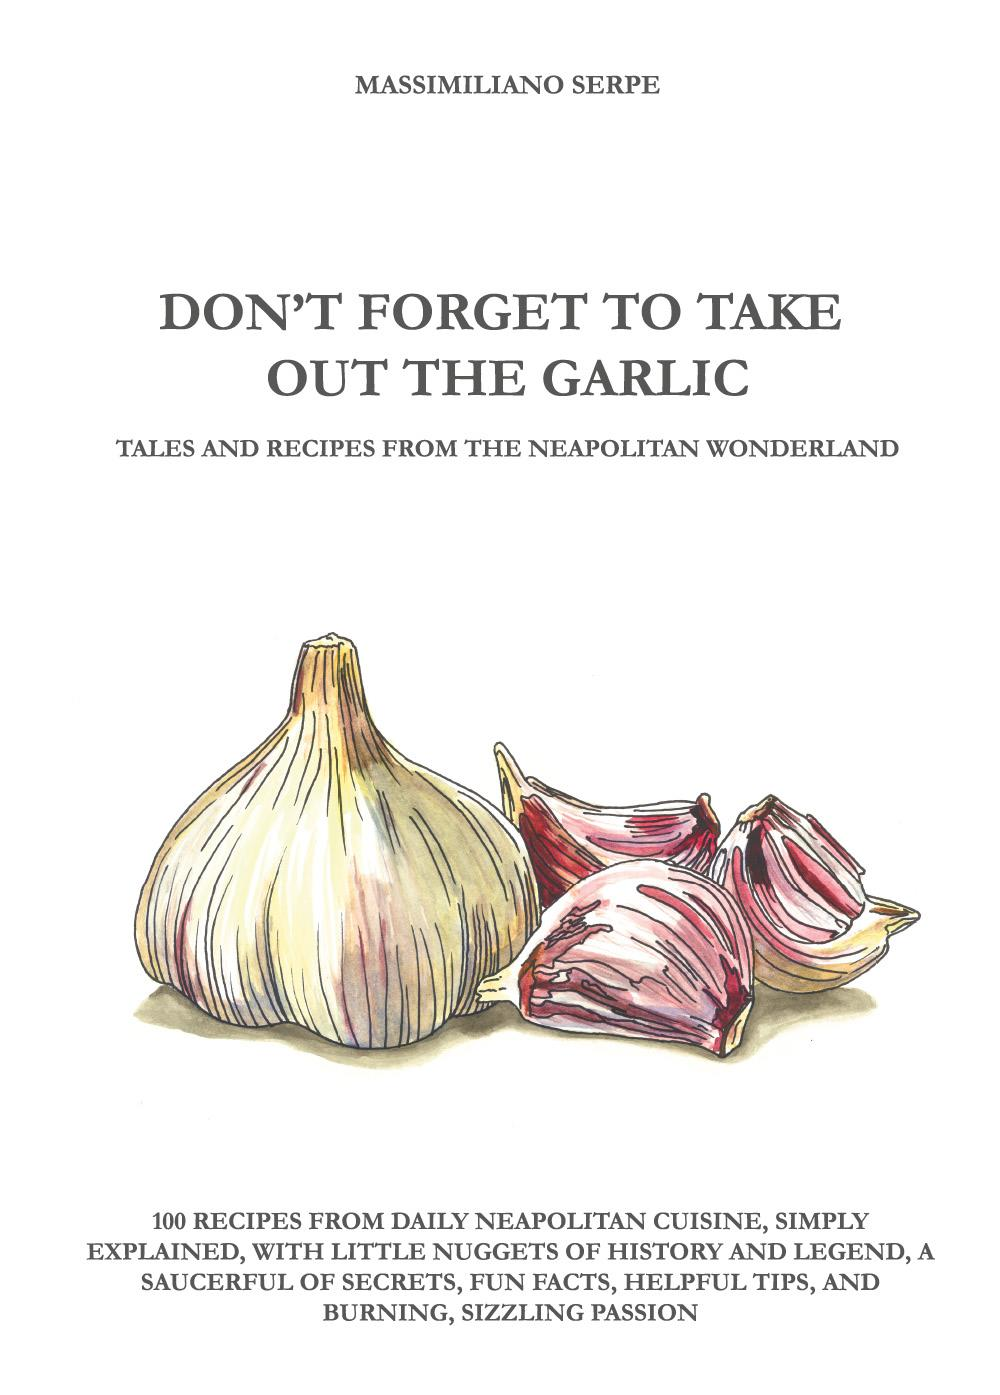 DON'T FORGET TO TAKE OUT THE GARLIC